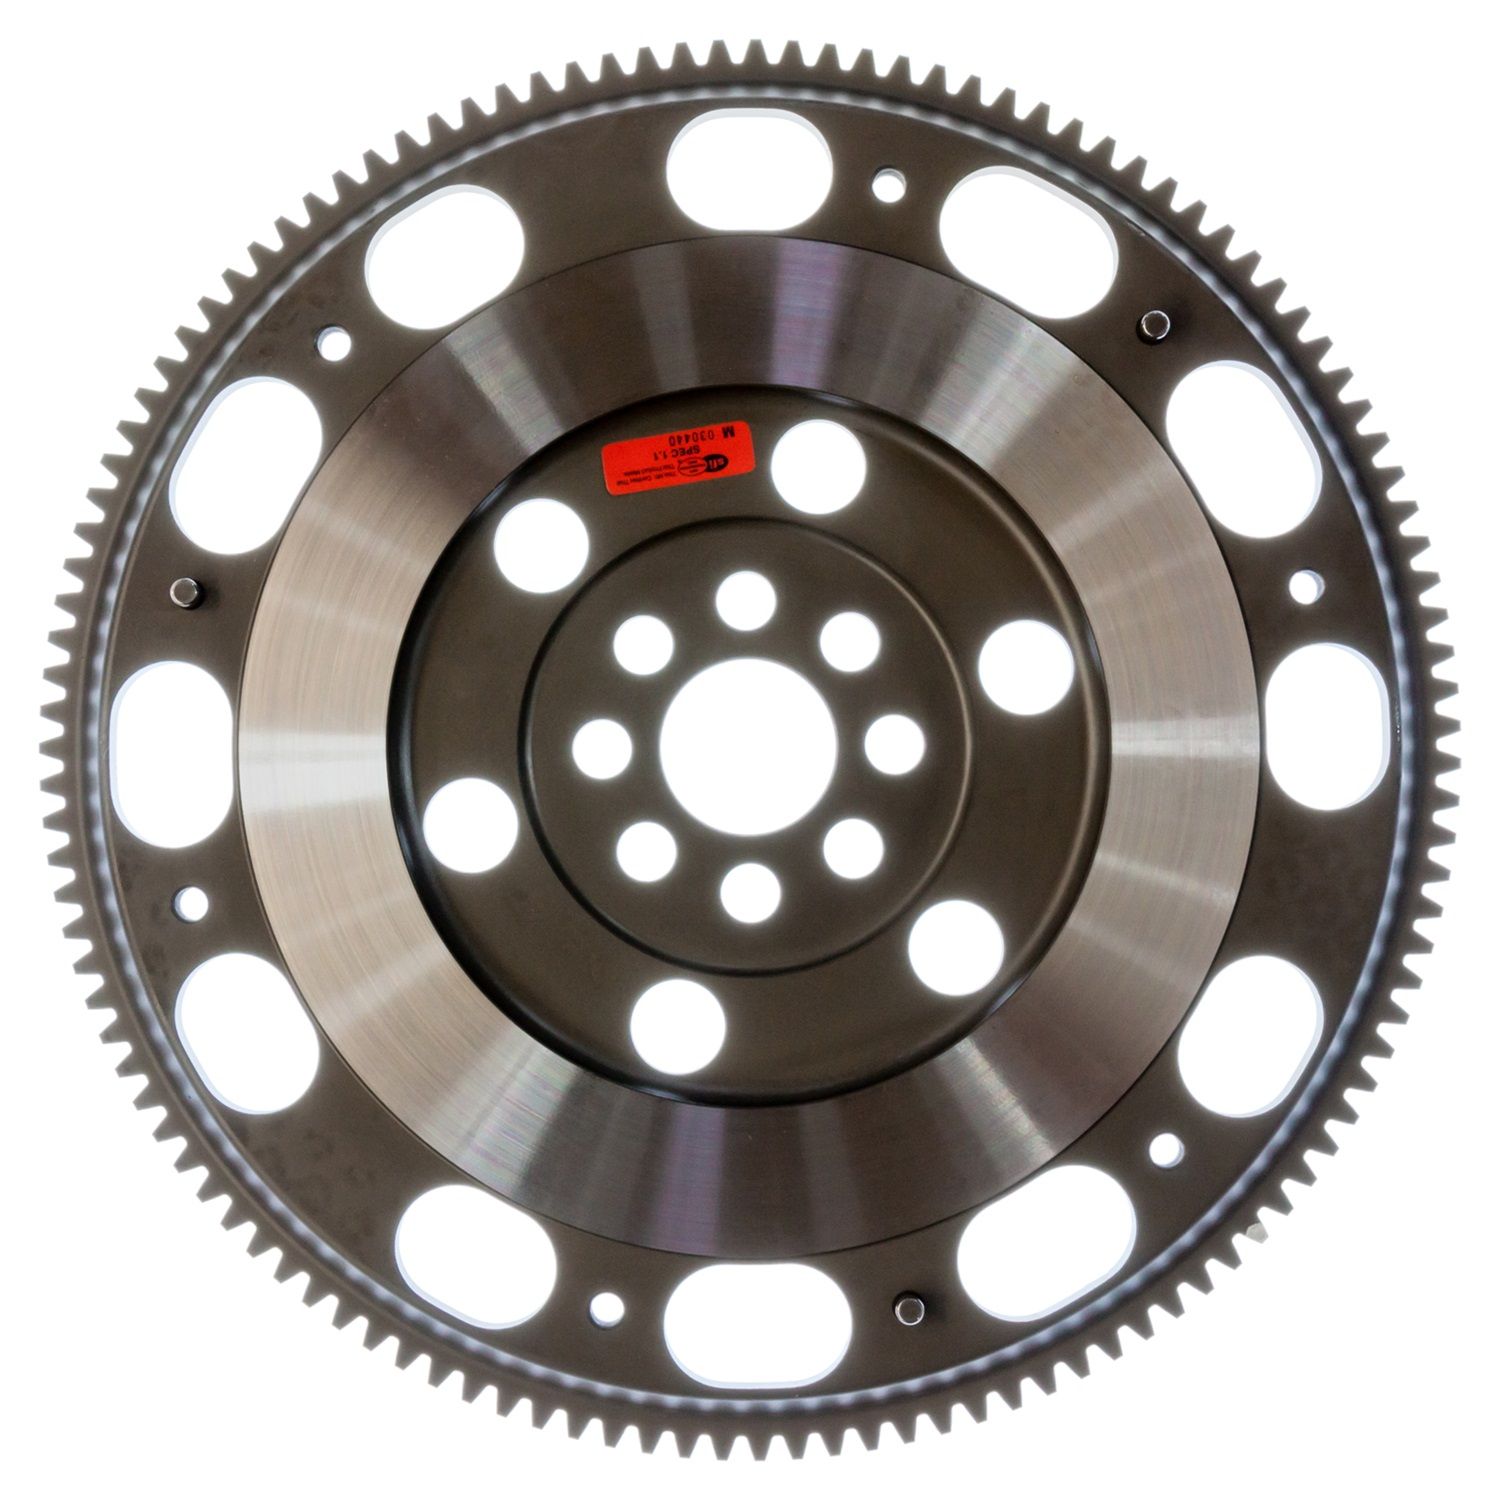 Exedy Racing Clutch HF02 Lightweight Racing Flywheel Fits Accord Civic RSX TSX